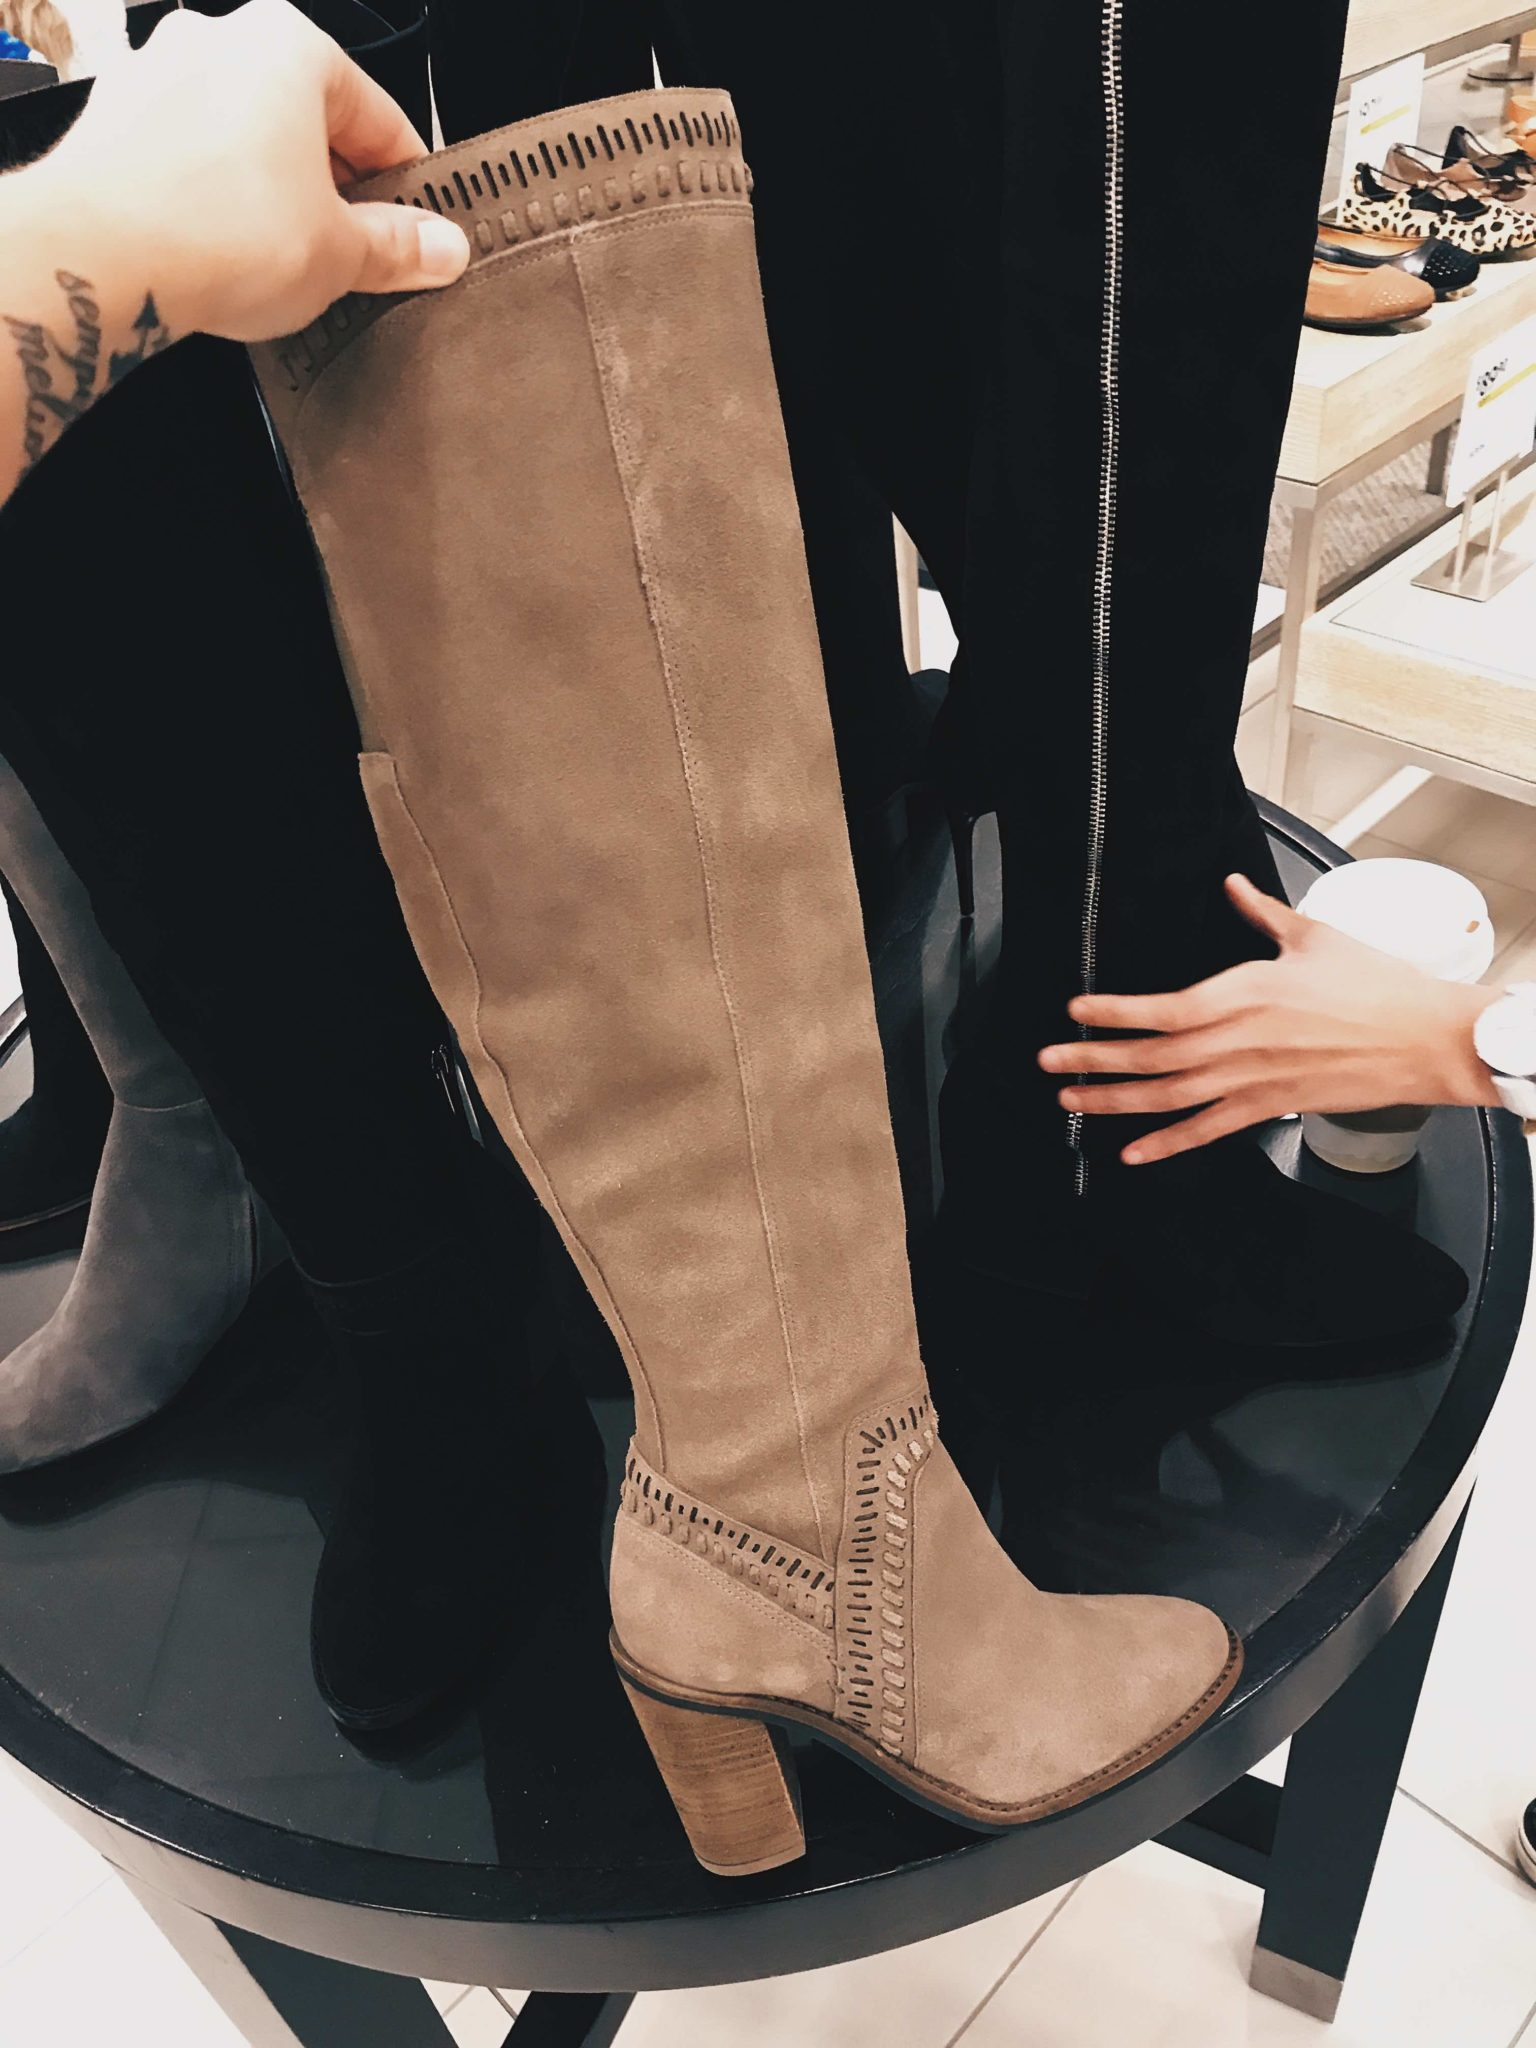 Austin Blogger DTKAustin is sharing her top must-have pieces from the 2017 Nordstrom Anniversary Sale. Vince Camuto OTK Suede Boots | nordstrom sale must haves | what to buy from the nordstrom anniversary sale || Dressed to Kill